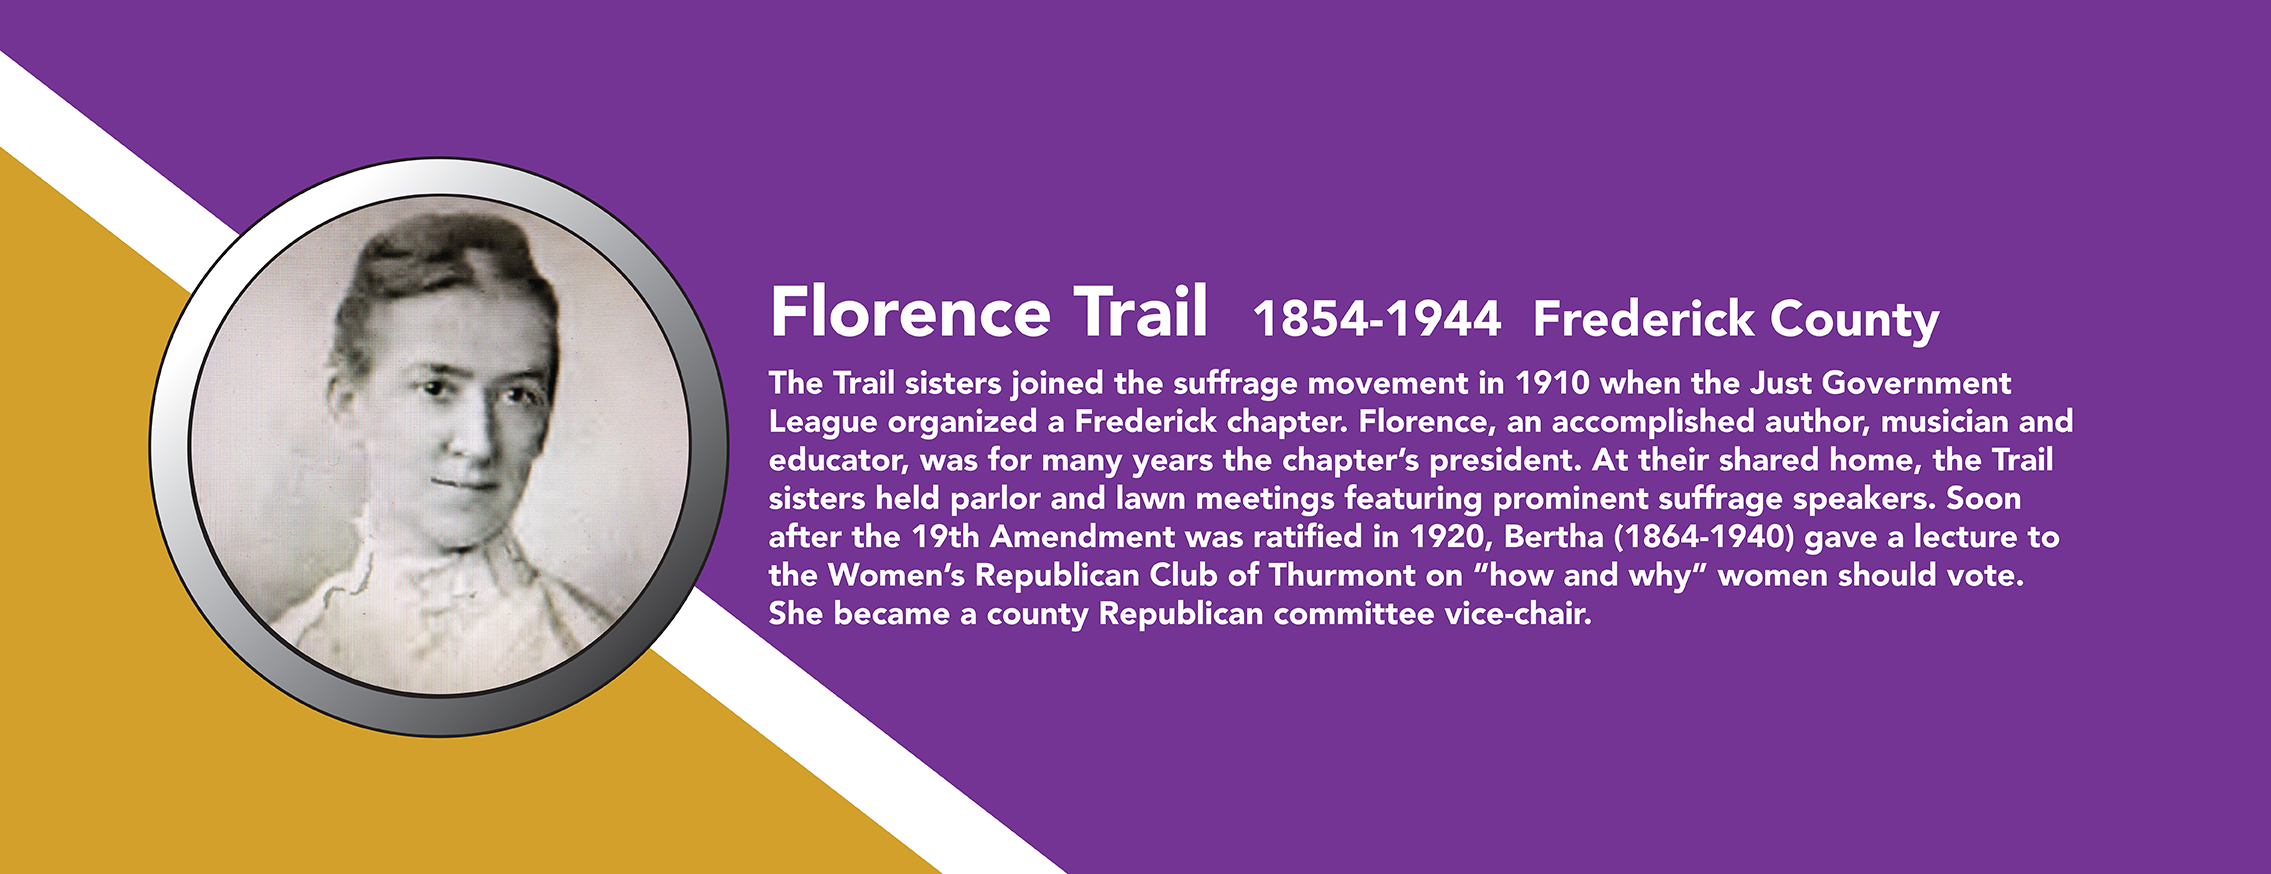 Florence Trail